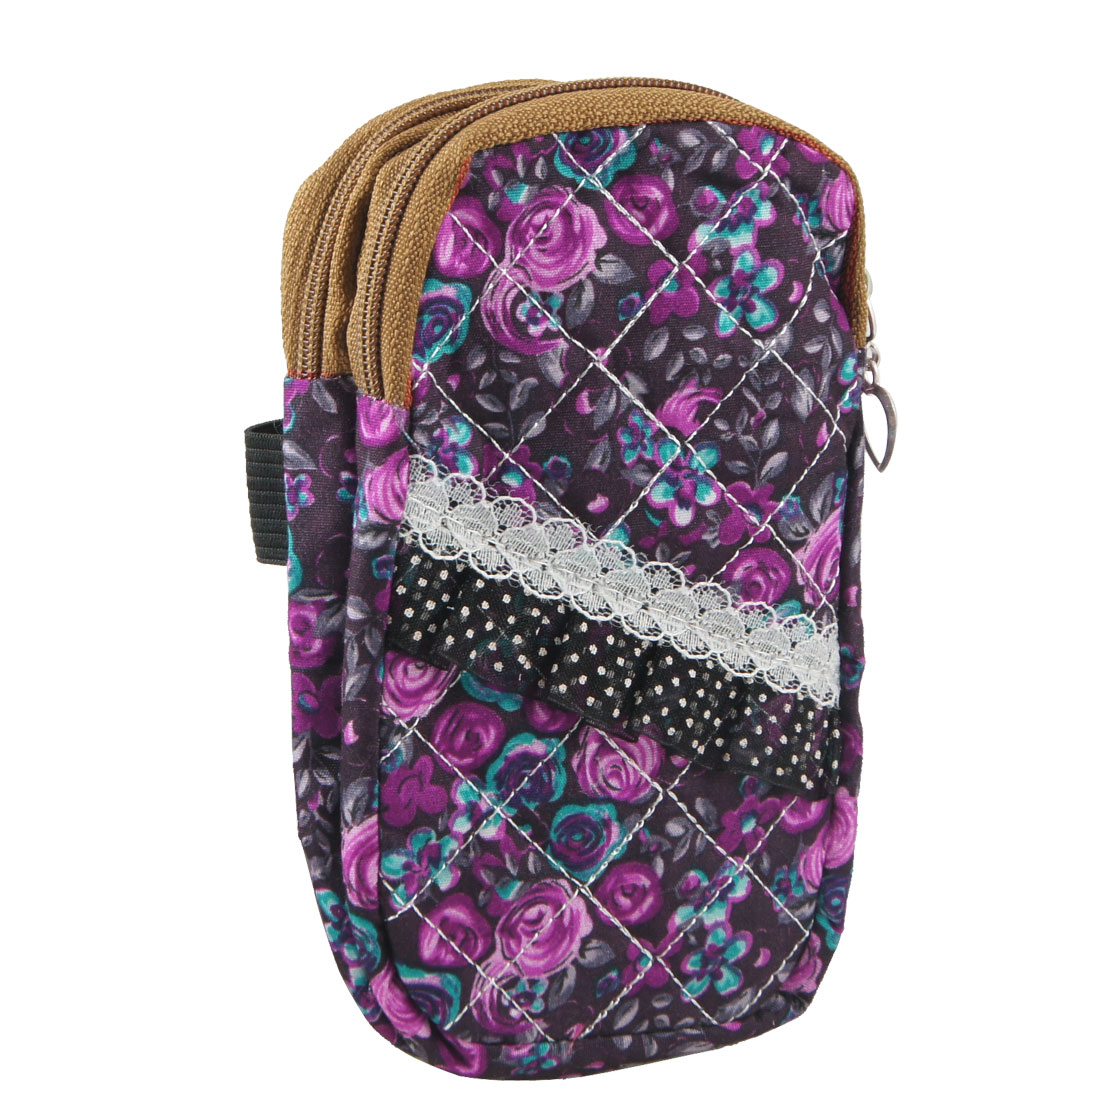 GrLace Decor Fuchsia Floral Print 2 Pockets Zip up Cell Phone Wrist Bag Pouch